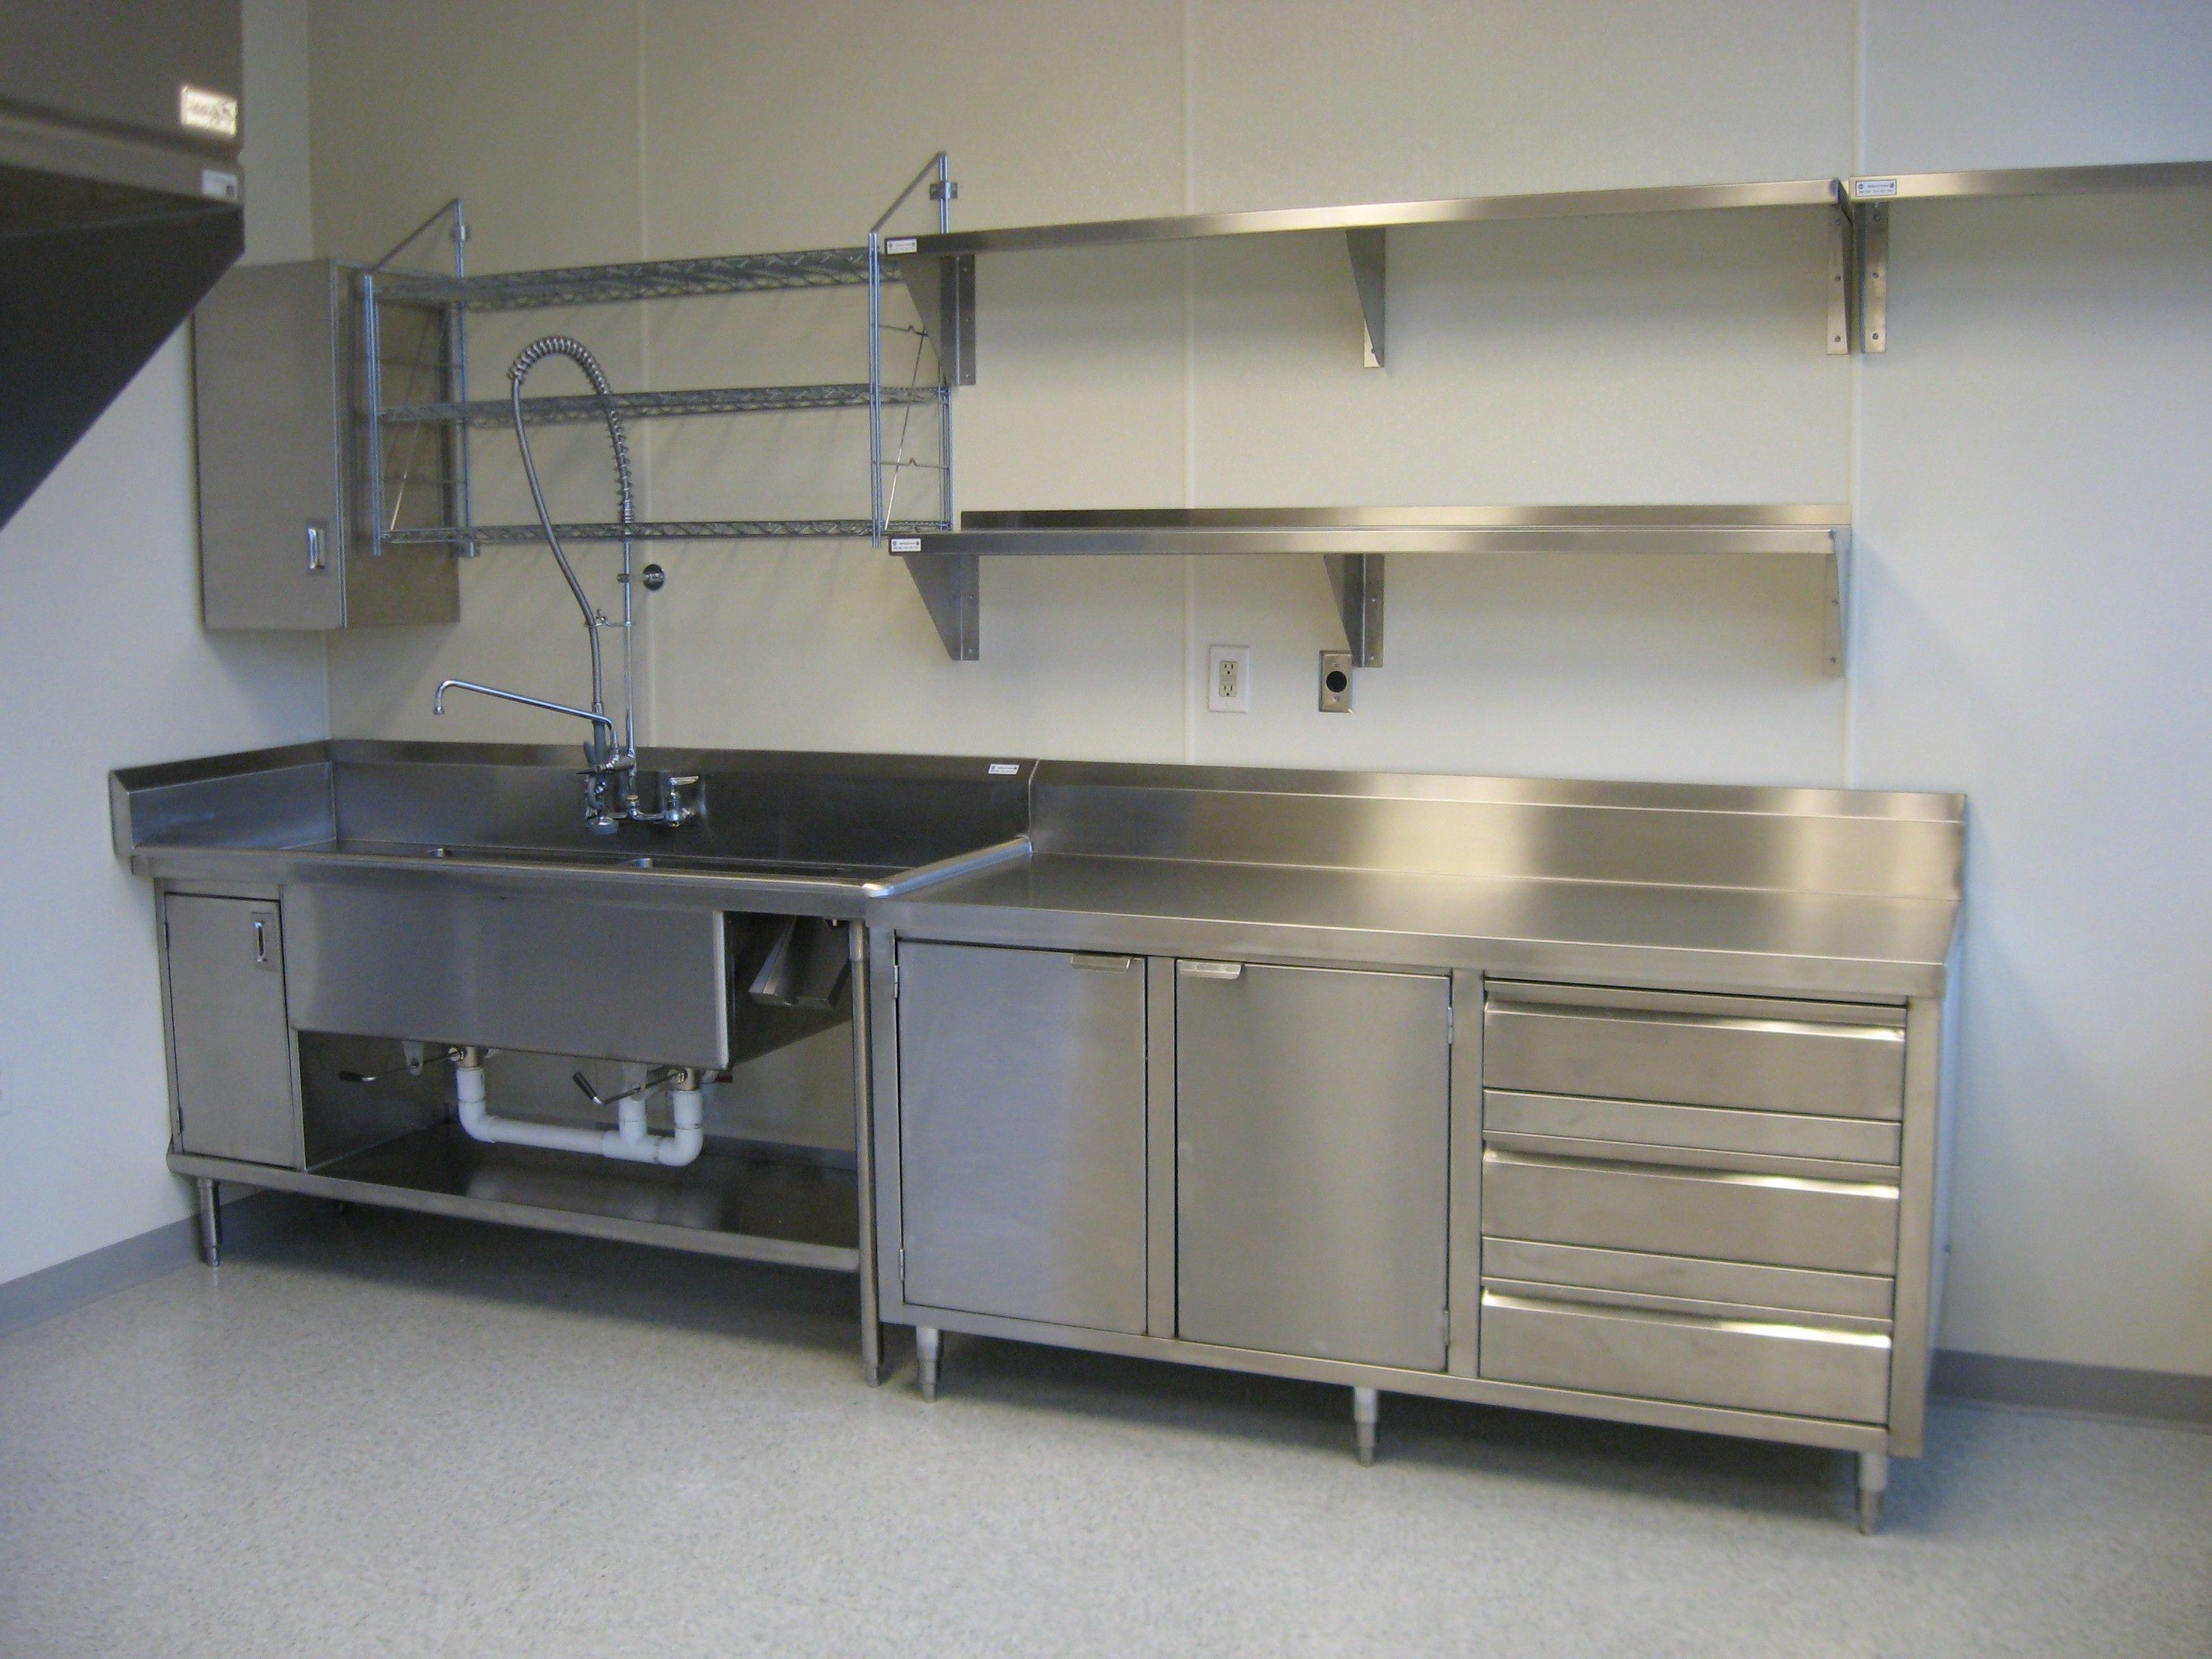 Shelving Stainless Steel Fitted Units Commercial Kitchen Large